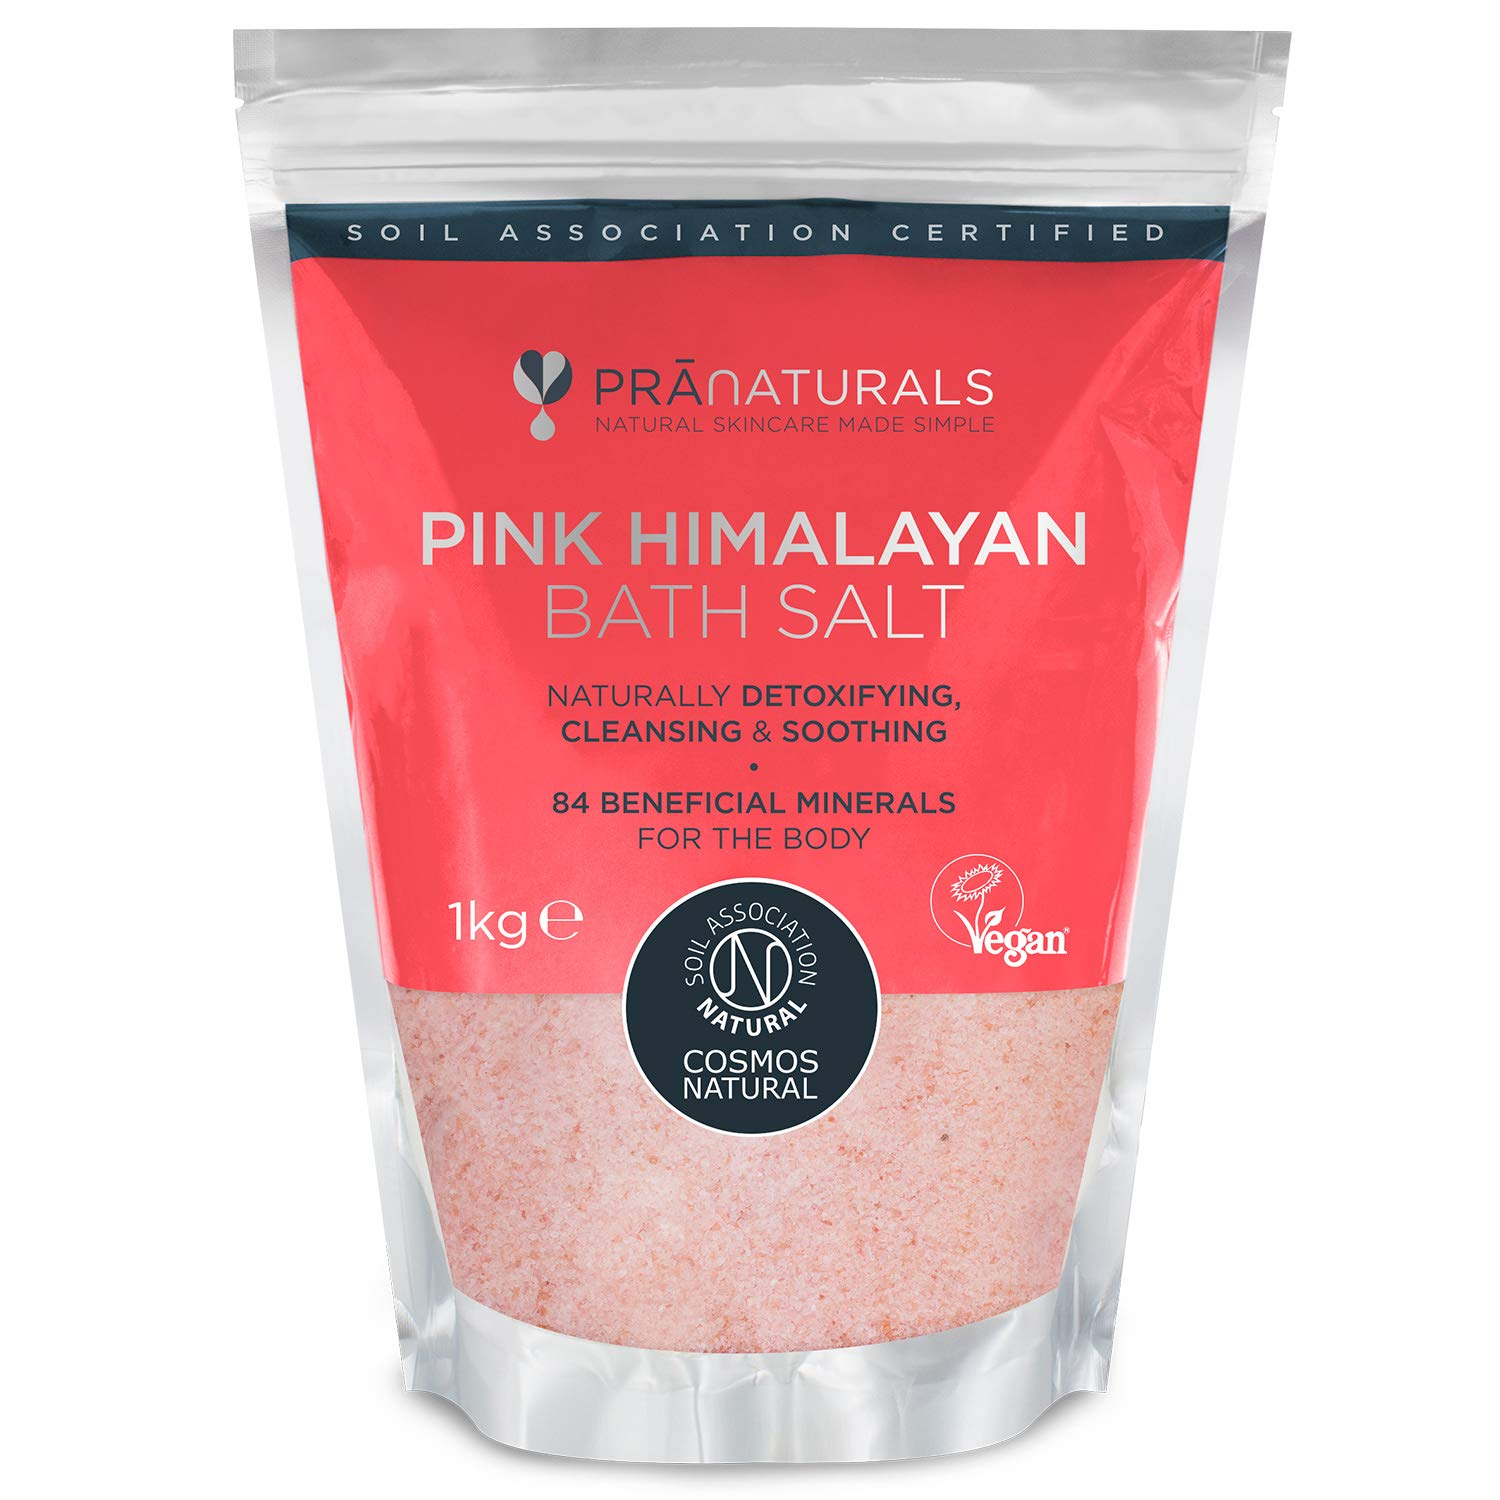 PraNaturals Himalayan Pink Salt [1KG] COSMOS NATURAL & VEGAN Certified Premium Fine Grade Bath Salts in Resealable Pouch – Naturally Organic, Unrefined, Non-GMO, No Additives – Rich in Minerals & Iron